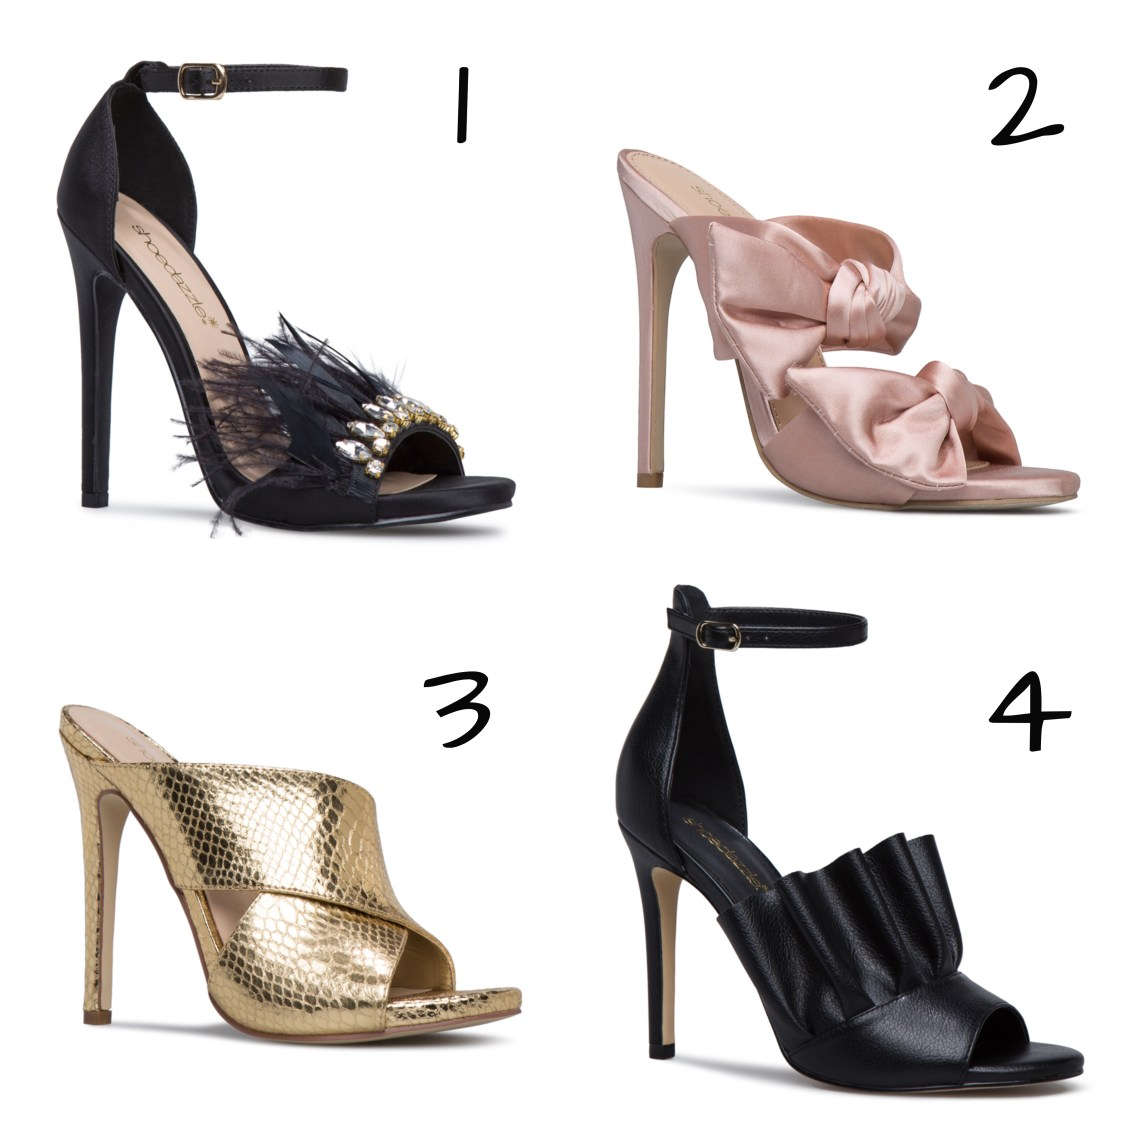 019a4eb0f0c Wednesday Wish List: Spring and Summer Shoes – Shelbee On the Edge